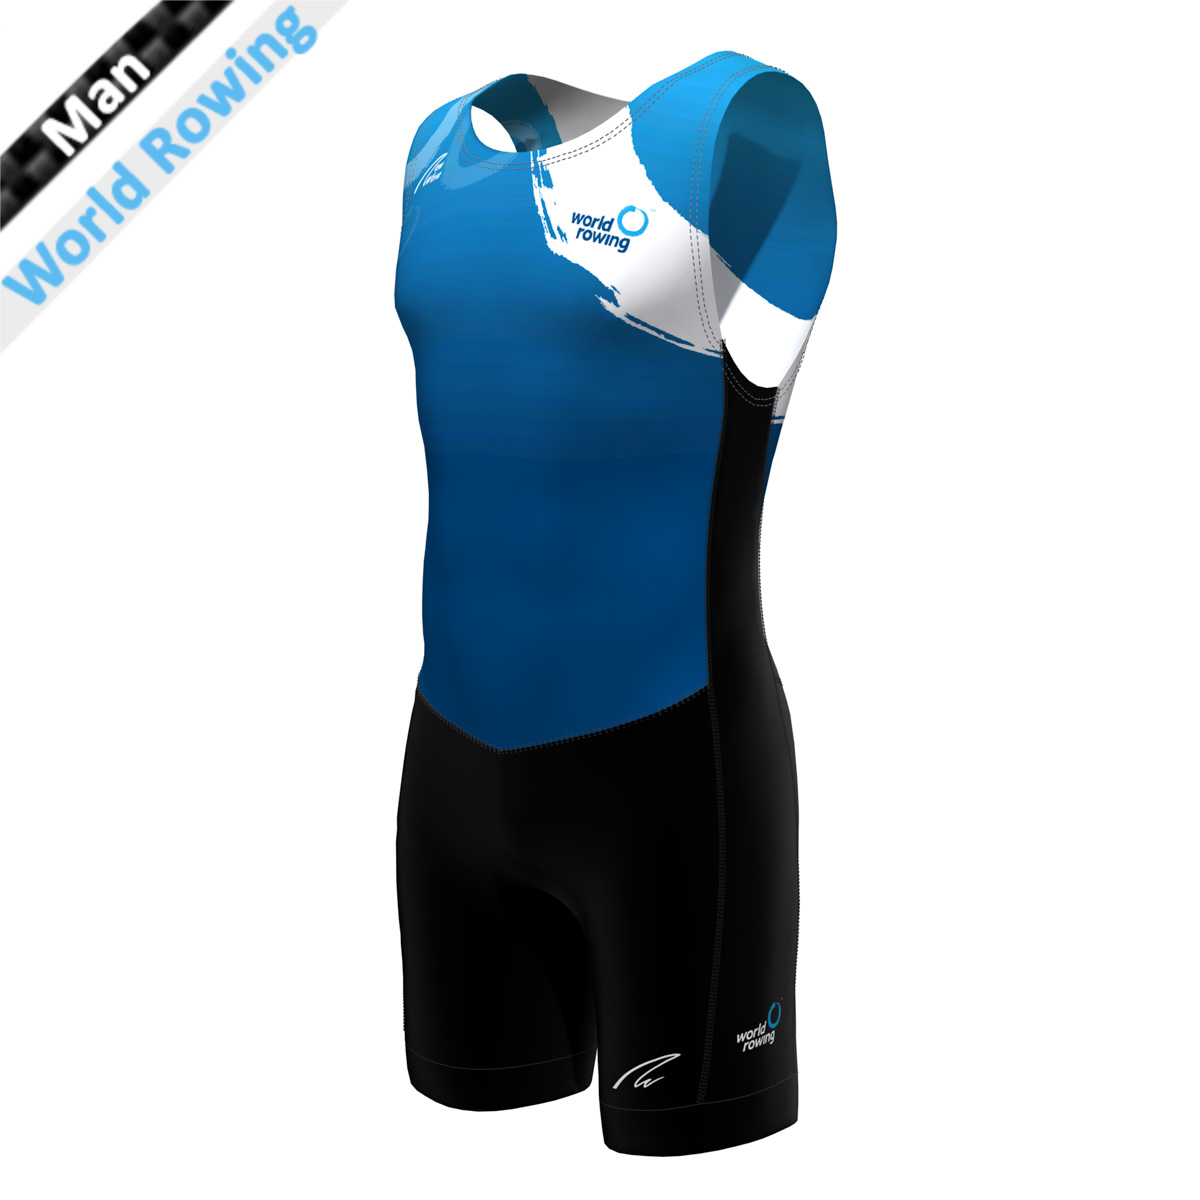 Pro Suit - Man World Rowing